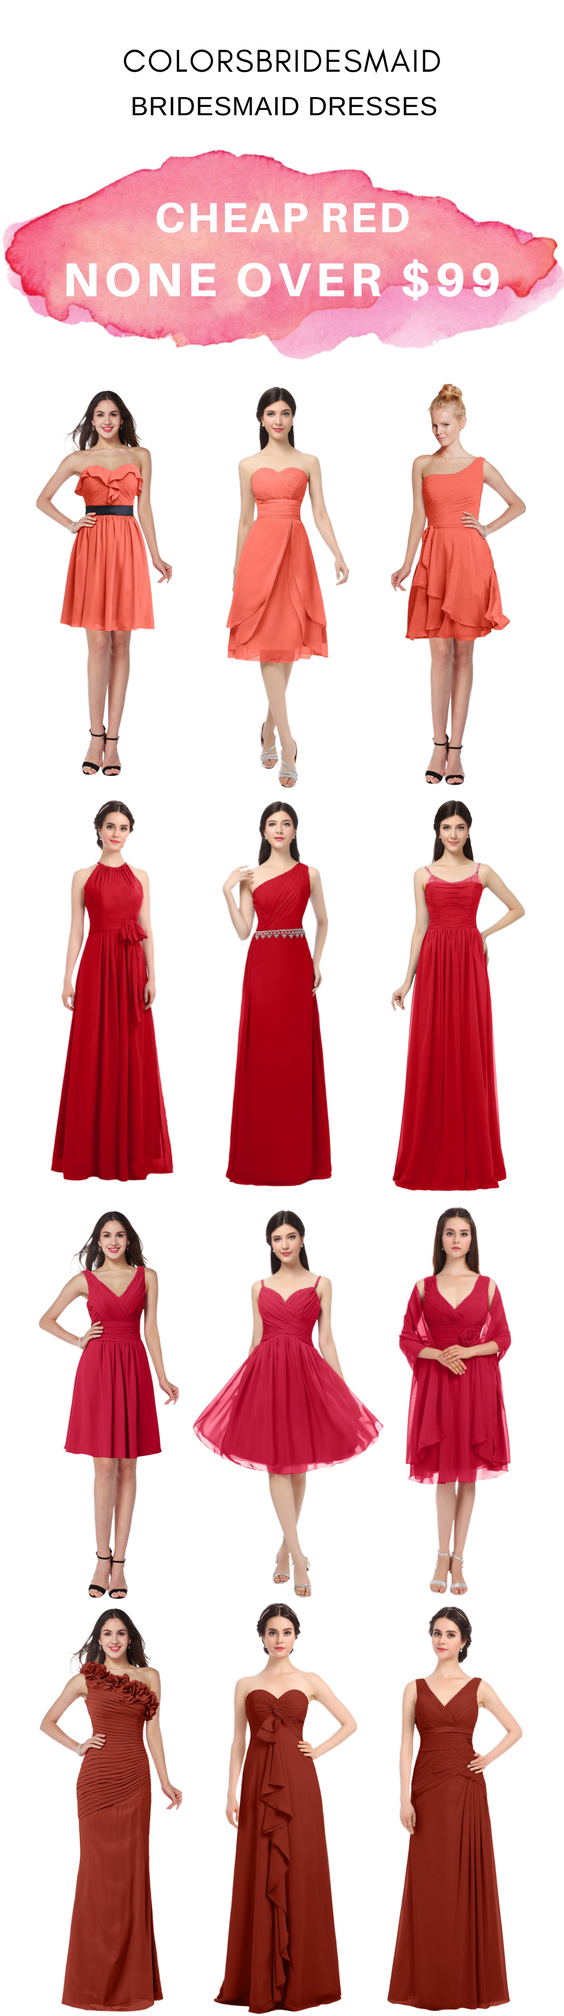 Cheap red bridesmaid dresses in short and long styles in colors of